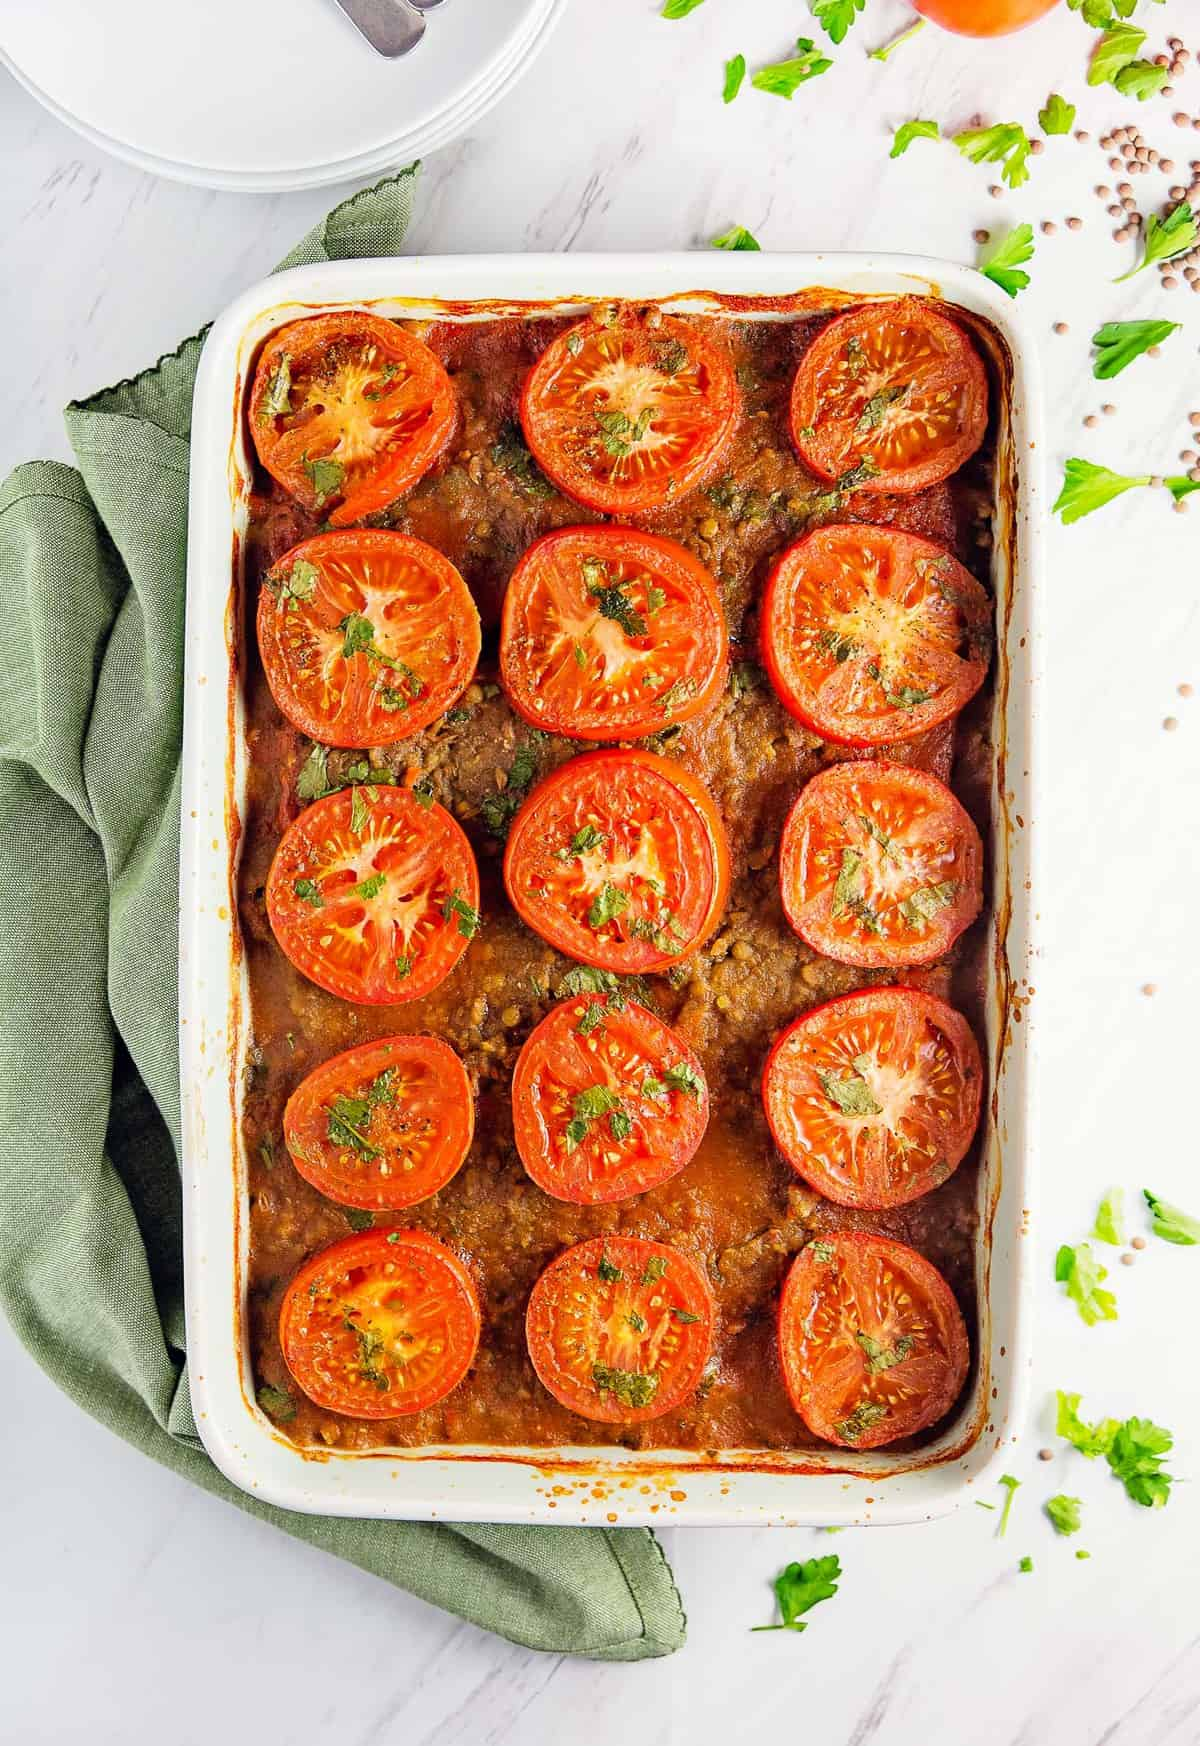 potato lentil tomato bake, vegan, vegetarian, whole food plant based, gluten free, recipe, wfpb, healthy, oil free, no refined sugar, no oil, refined sugar free, dinner, side, side dish, dairy free, entertaining, dinner party